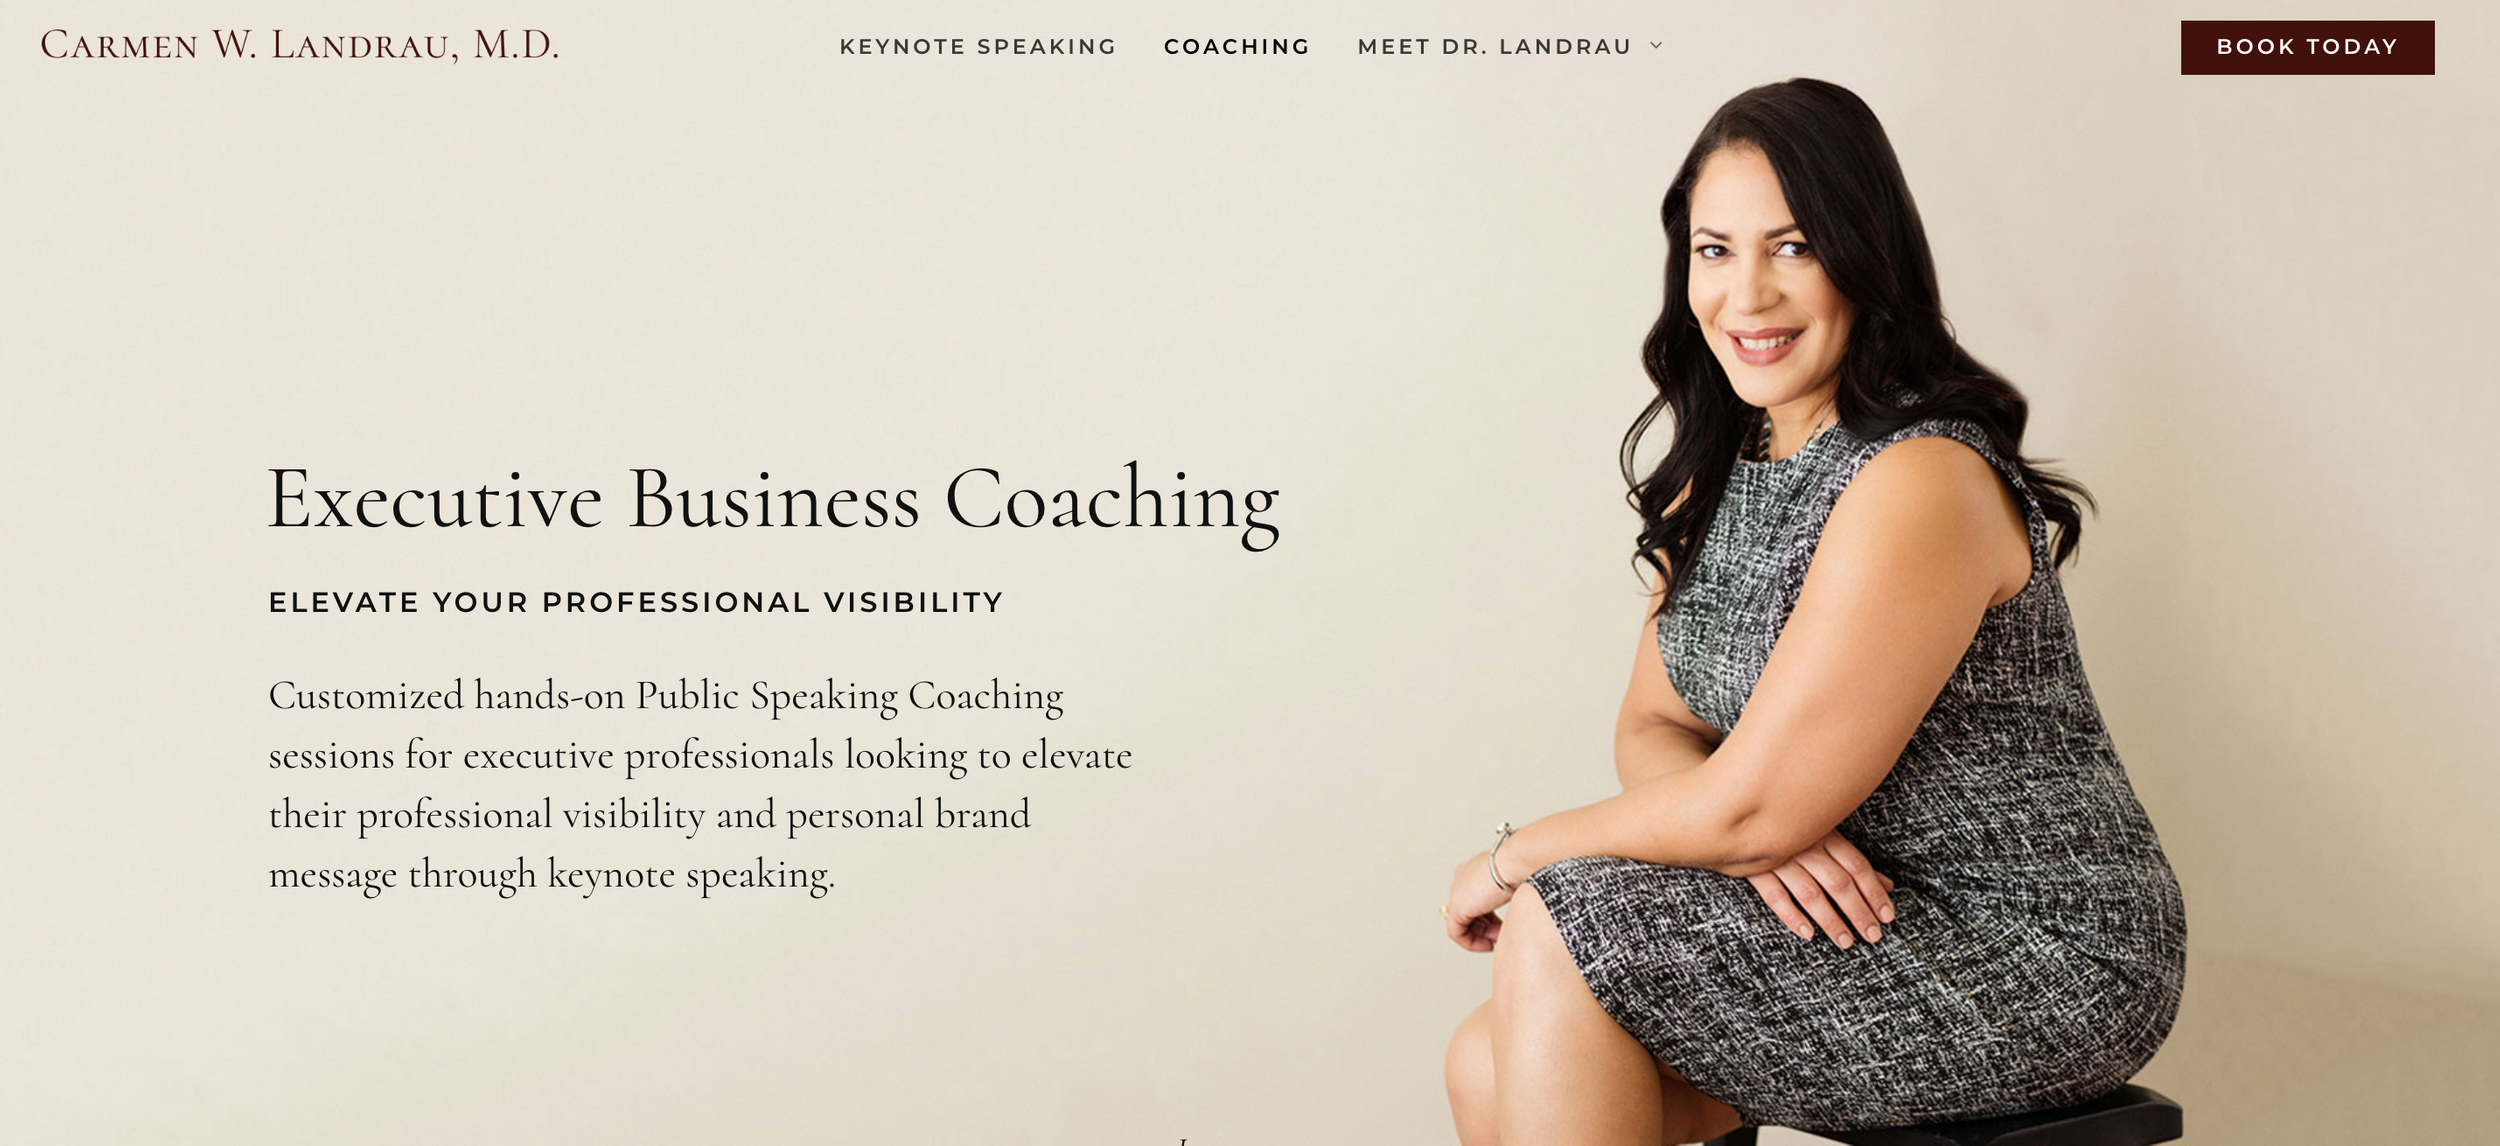 Website header with personal branding portrait